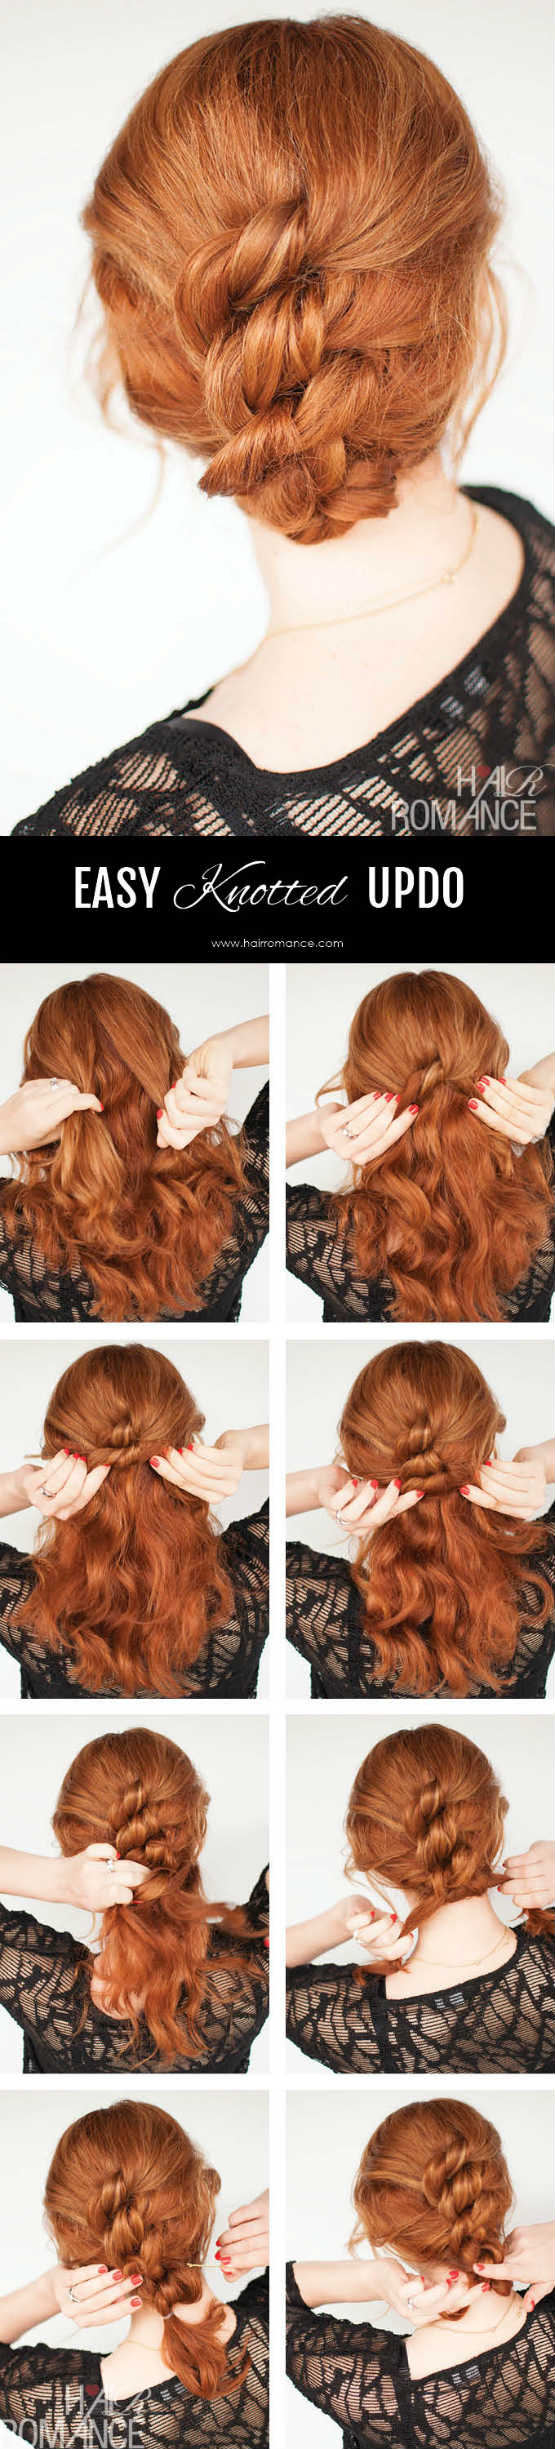 Bridal Hairstyles For Long Hair Updo Styles